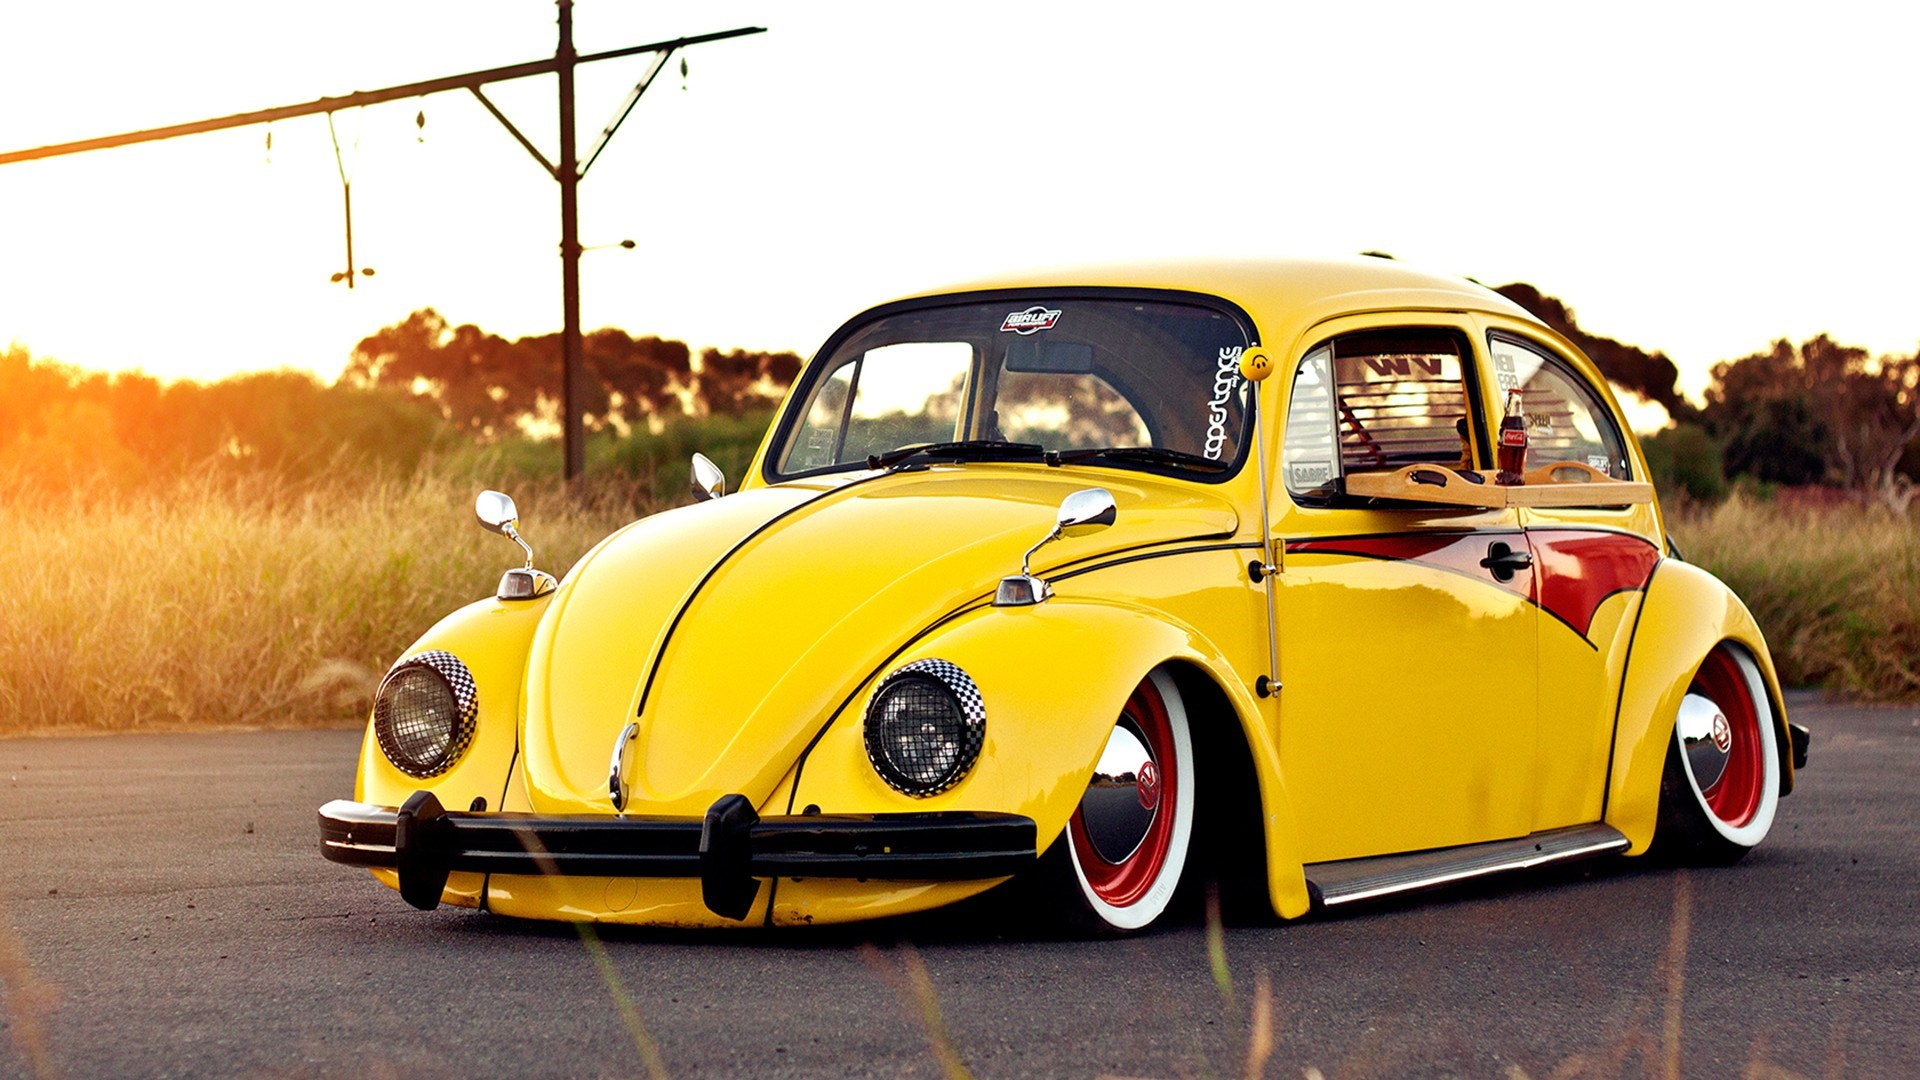 savage on dune beetle vw volkswagen wheels yellow